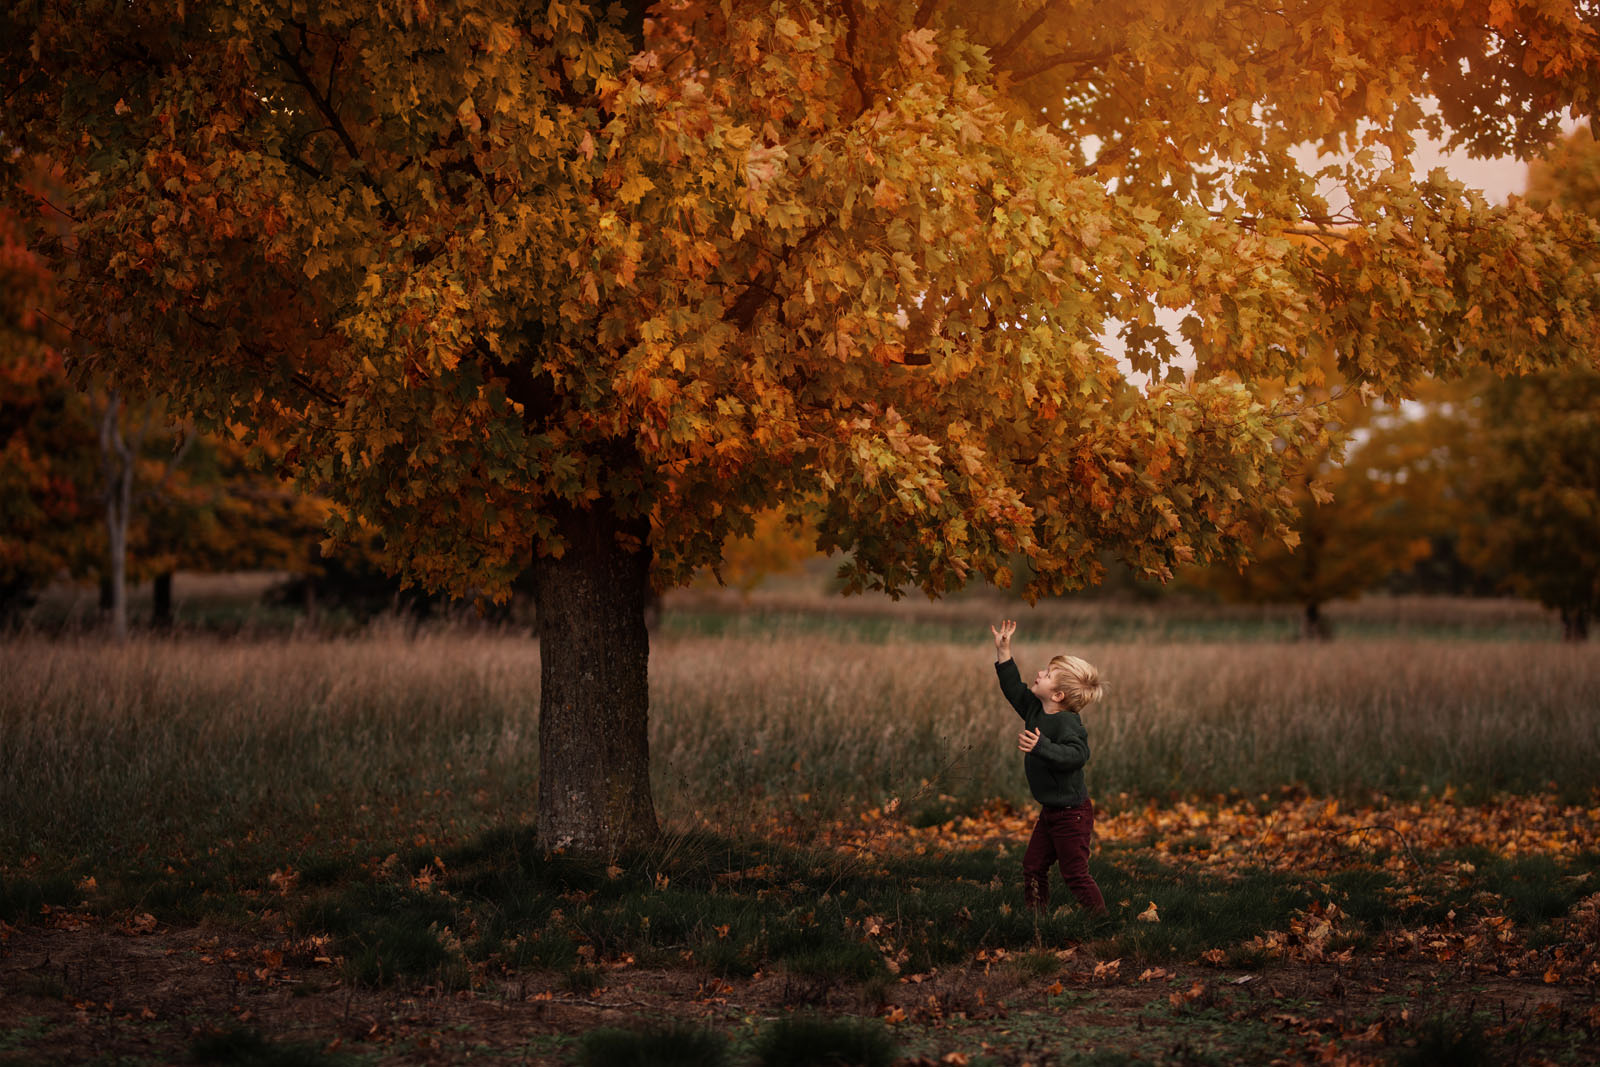 megloeks_image17 child reaching for leaves from autumn tree yellow fall activities by meg loeks